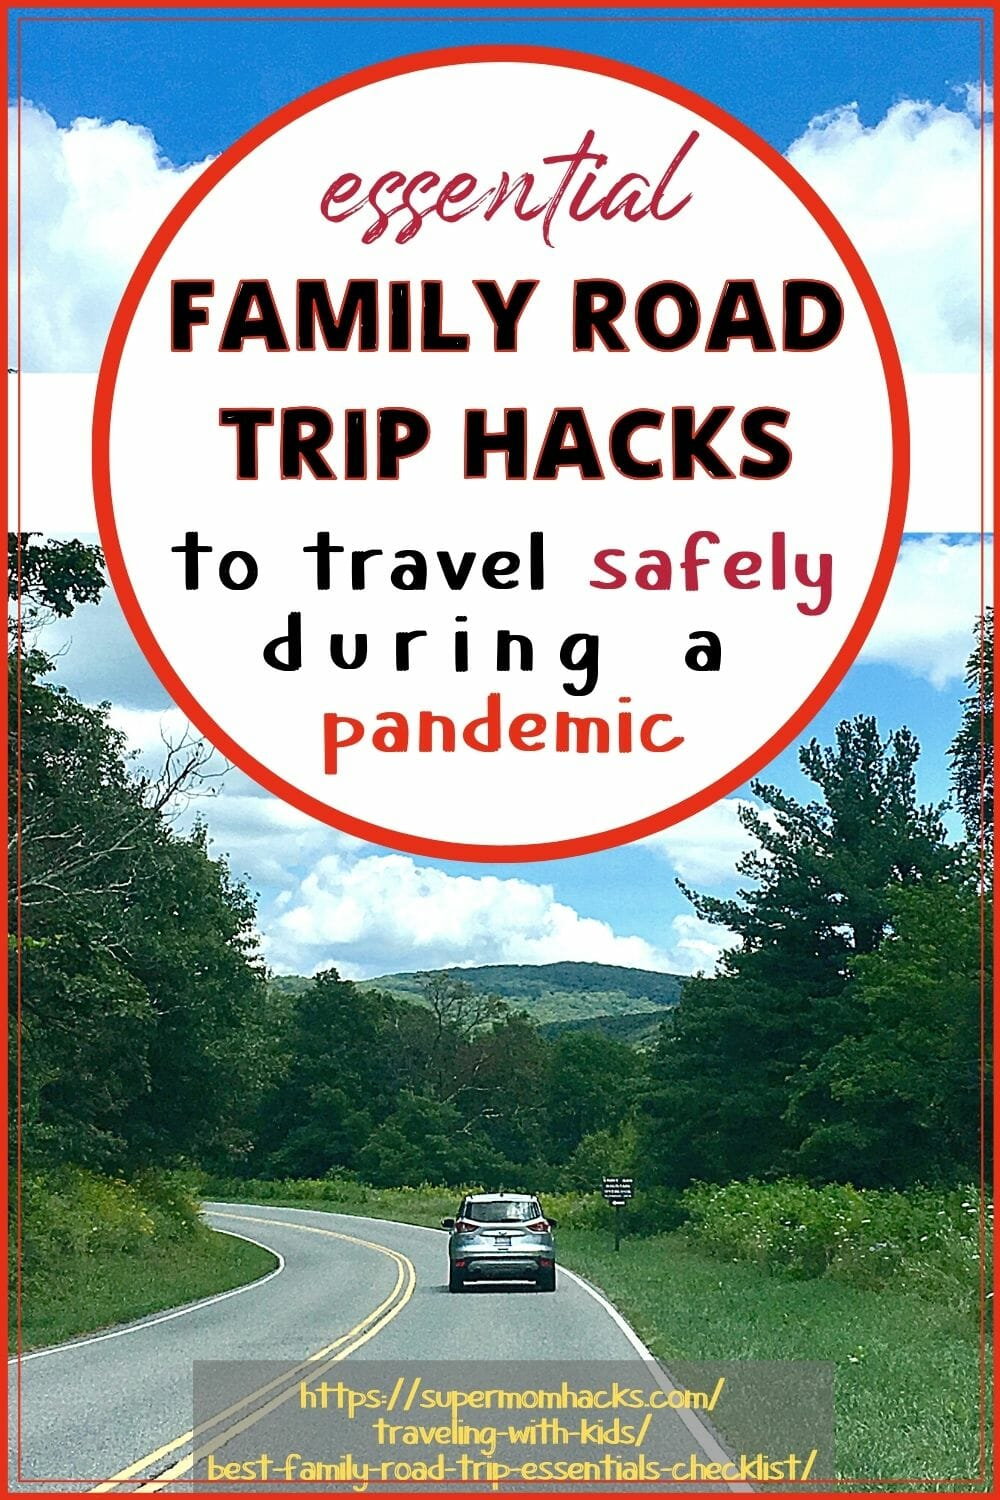 Planning a family road trip? These family road trip essentials and road trip hacks will ensure a smooth trip in these uncertain times. Essential Family Road Trip Hacks to Travel Safely - SuperMomHacks | family road trip essentials | family road trip hacks | road trip pandemic | how to road trip during a pandemic | road trip meal hacks | road trip ideas for kids | best road trip hacks | road trip hacks for kids | road trip safety | pandemic travel safety | family road trip essentials checklist